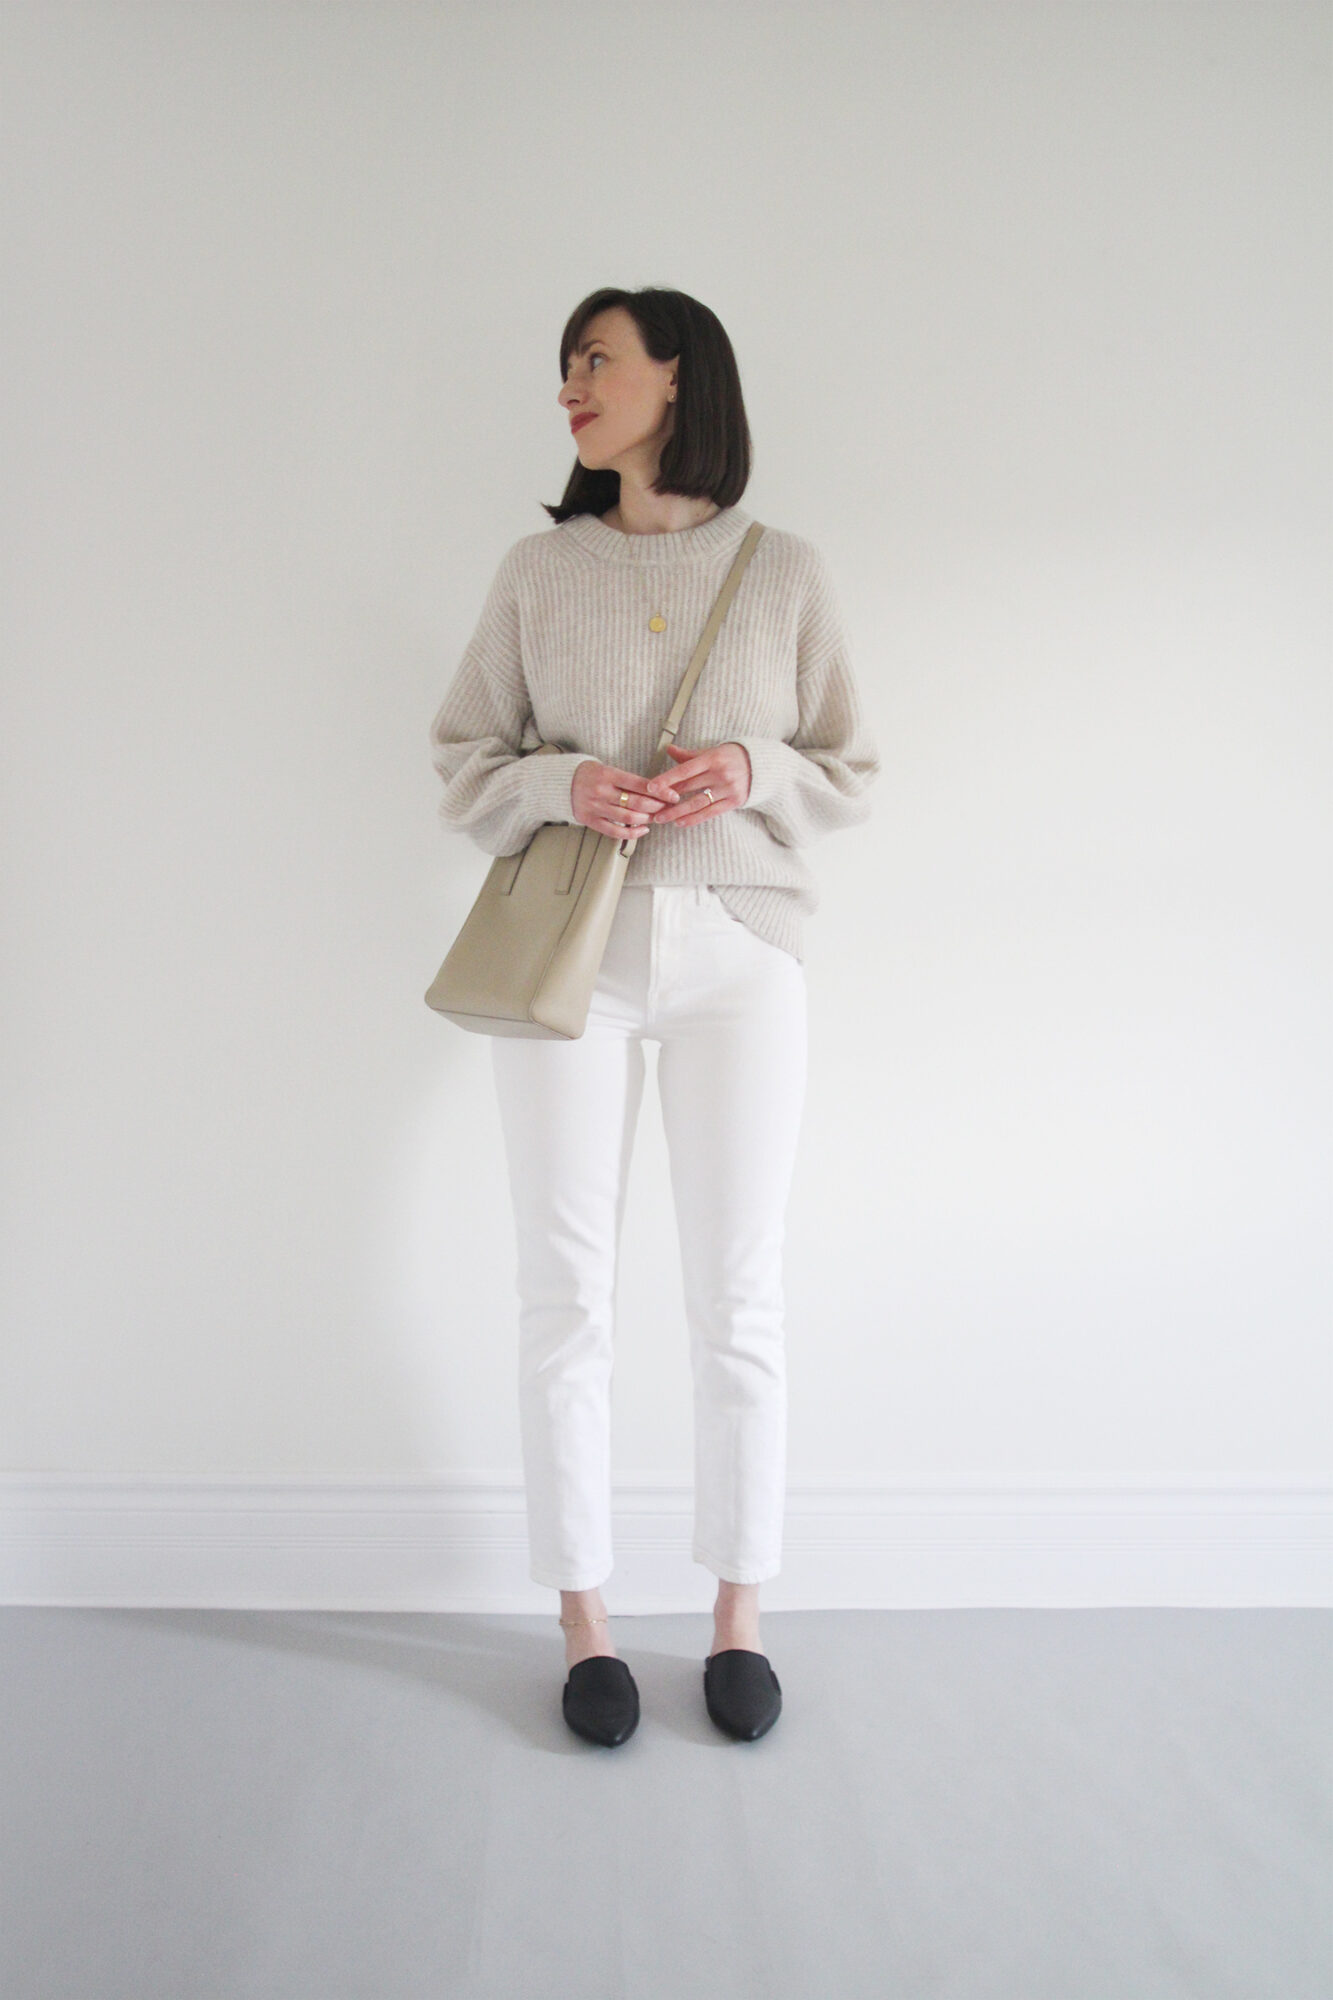 Style Bee - Light Knit & White Jeans